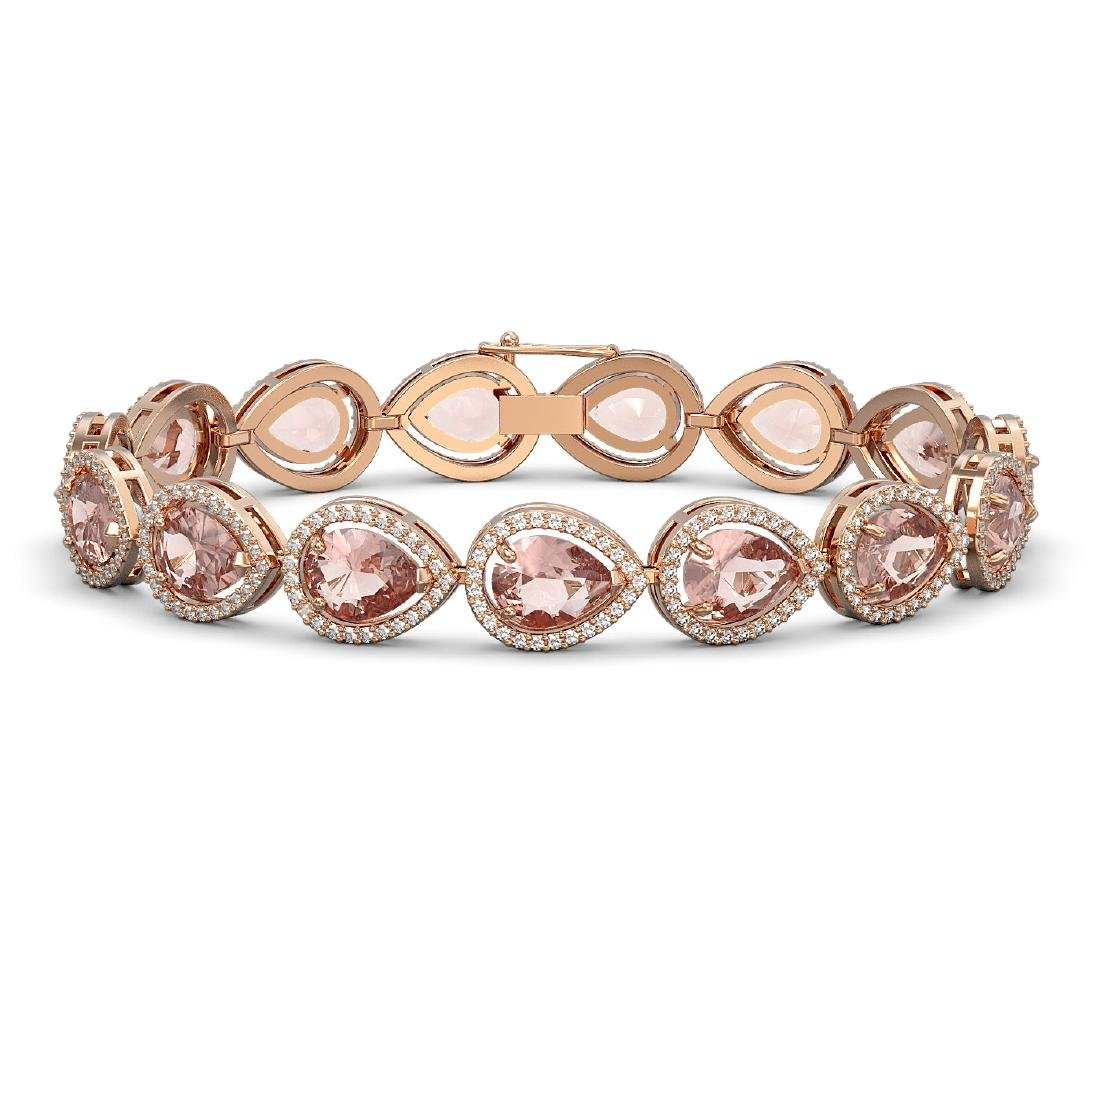 19.55 CTW Morganite & Diamond Halo Bracelet 10K Rose